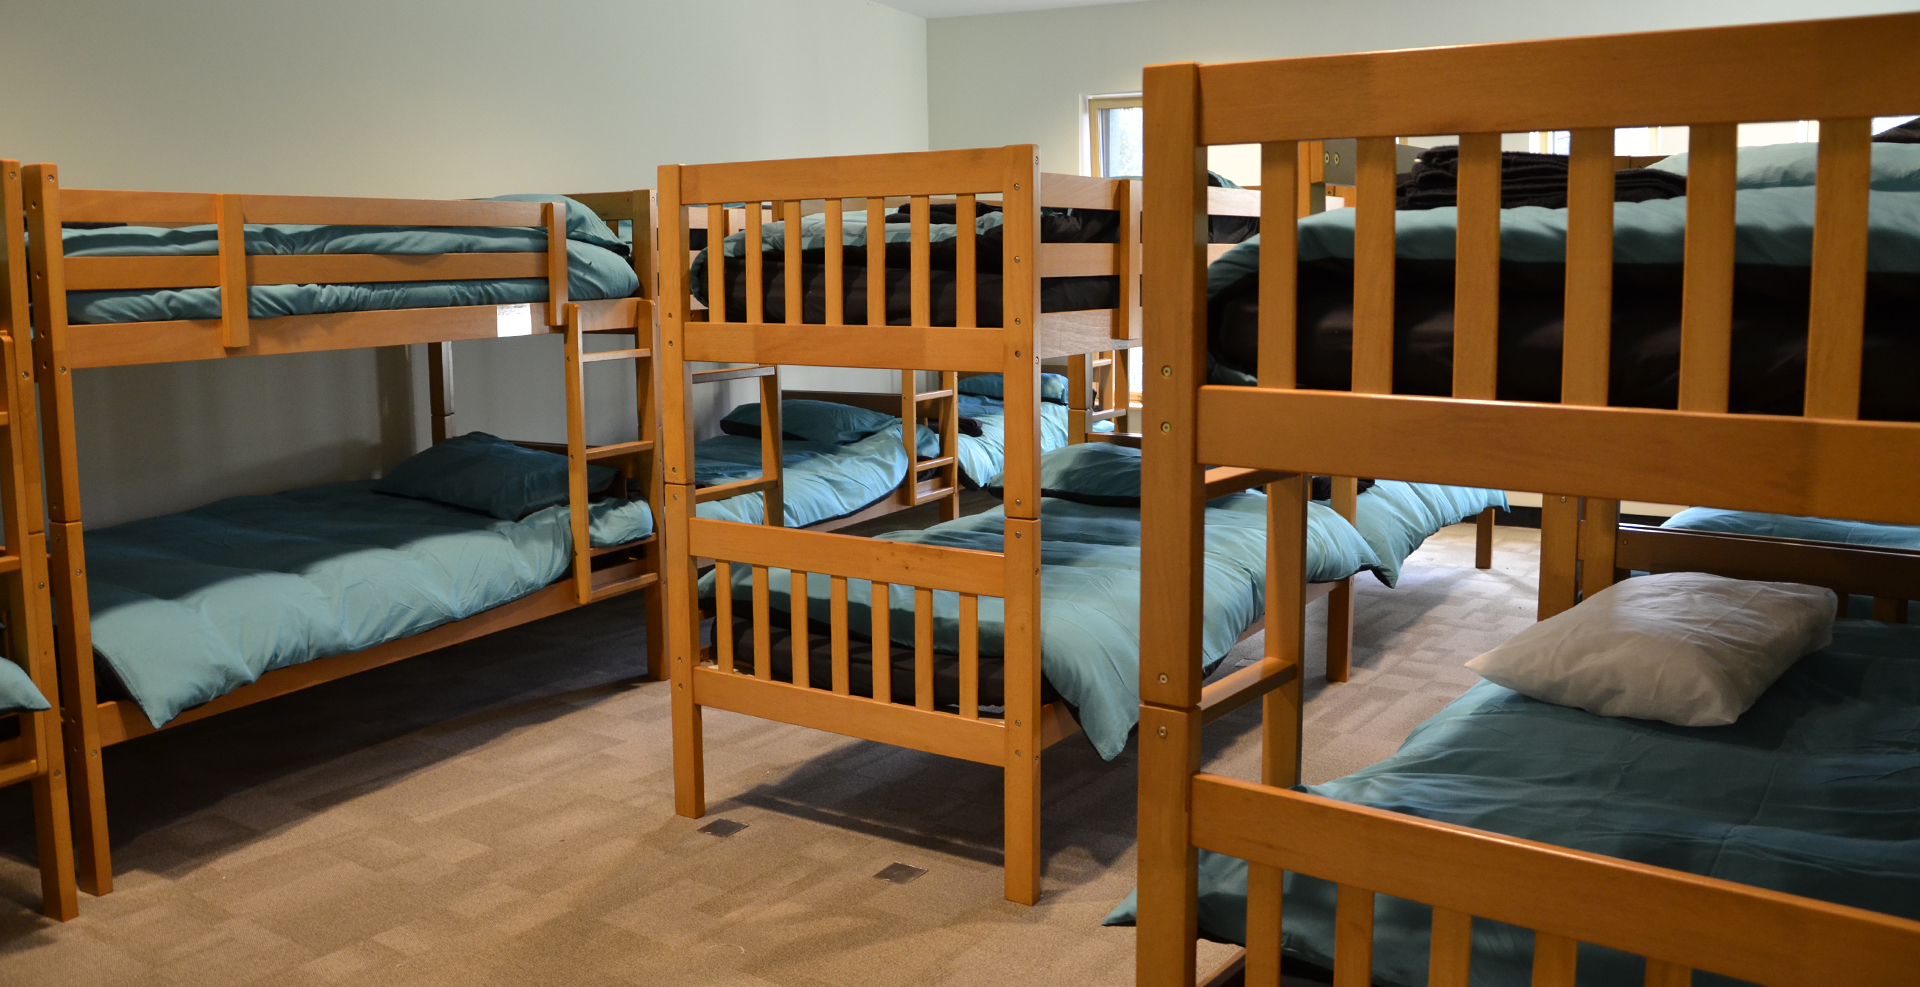 SPEC residential complex accommodation